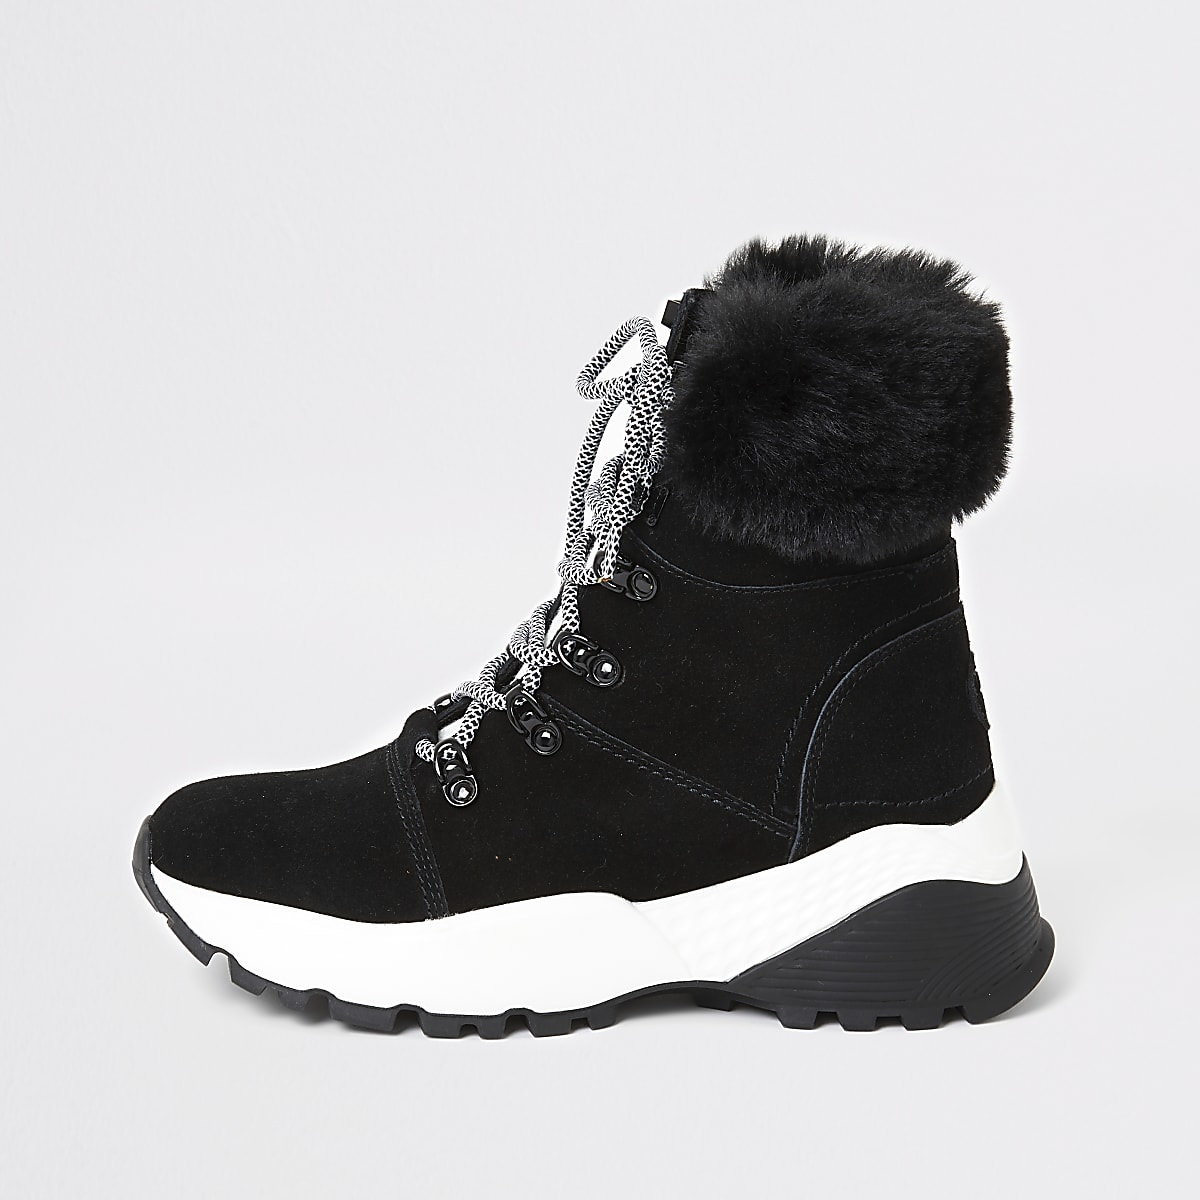 Black suede trainer boots